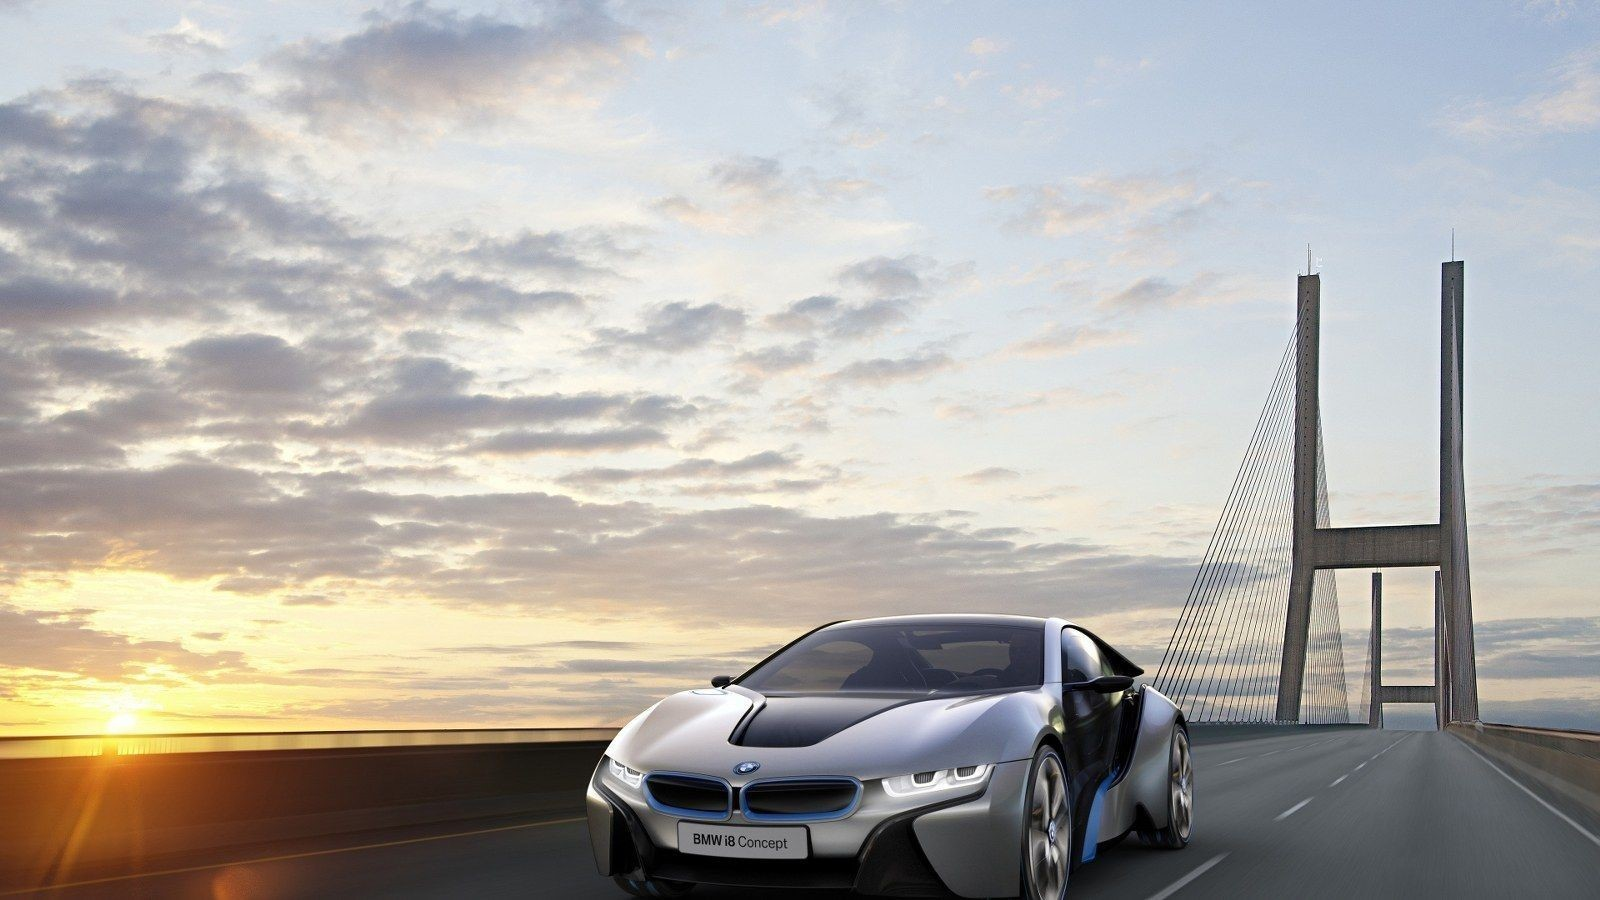 Future Cars Wallpapers